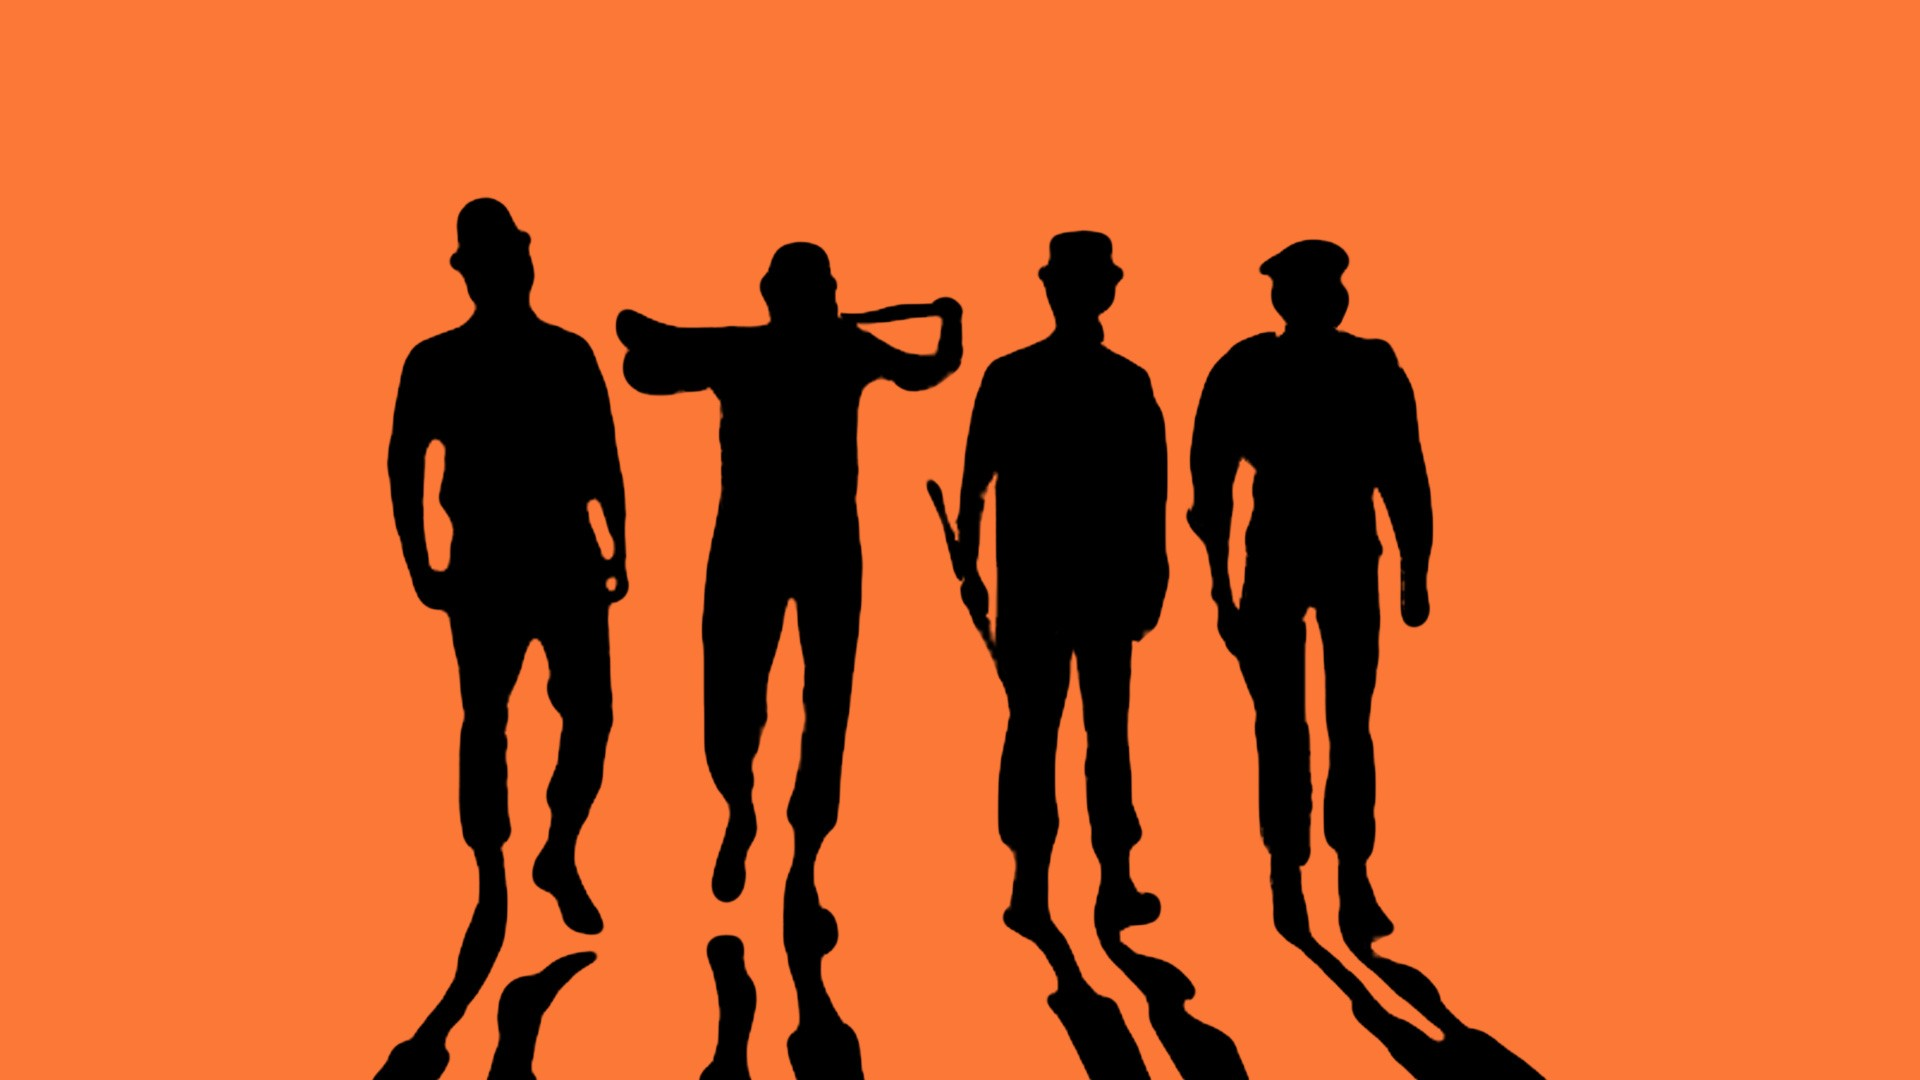 49 A Clockwork Orange HD Wallpapers | Backgrounds ... A Clockwork Orange Wallpaper 1920x1080